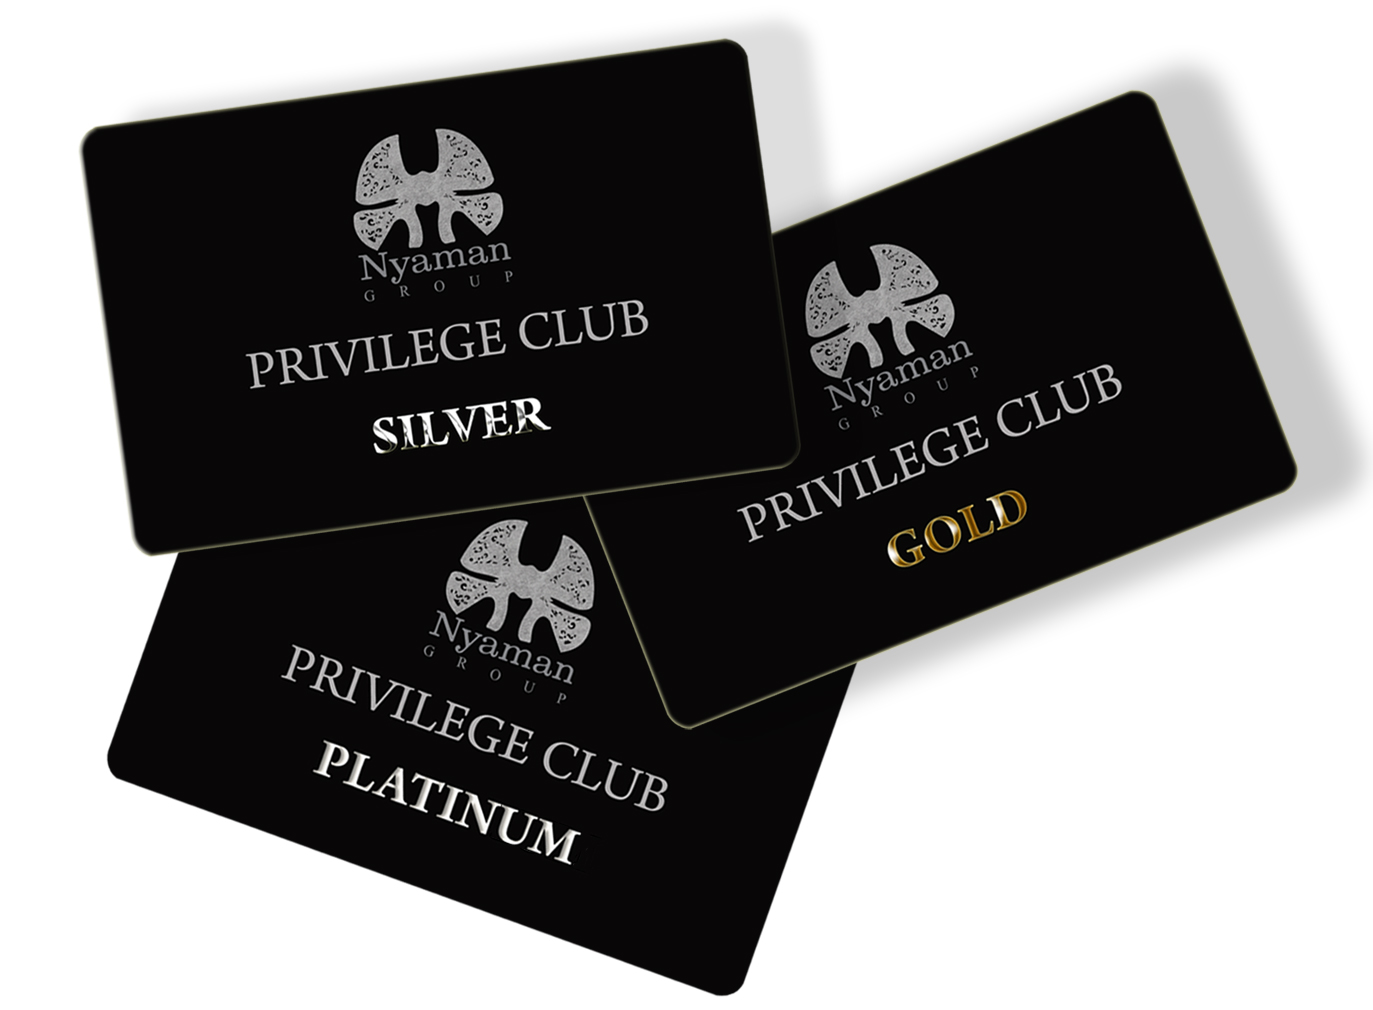 Privilege Club Nyaman Group